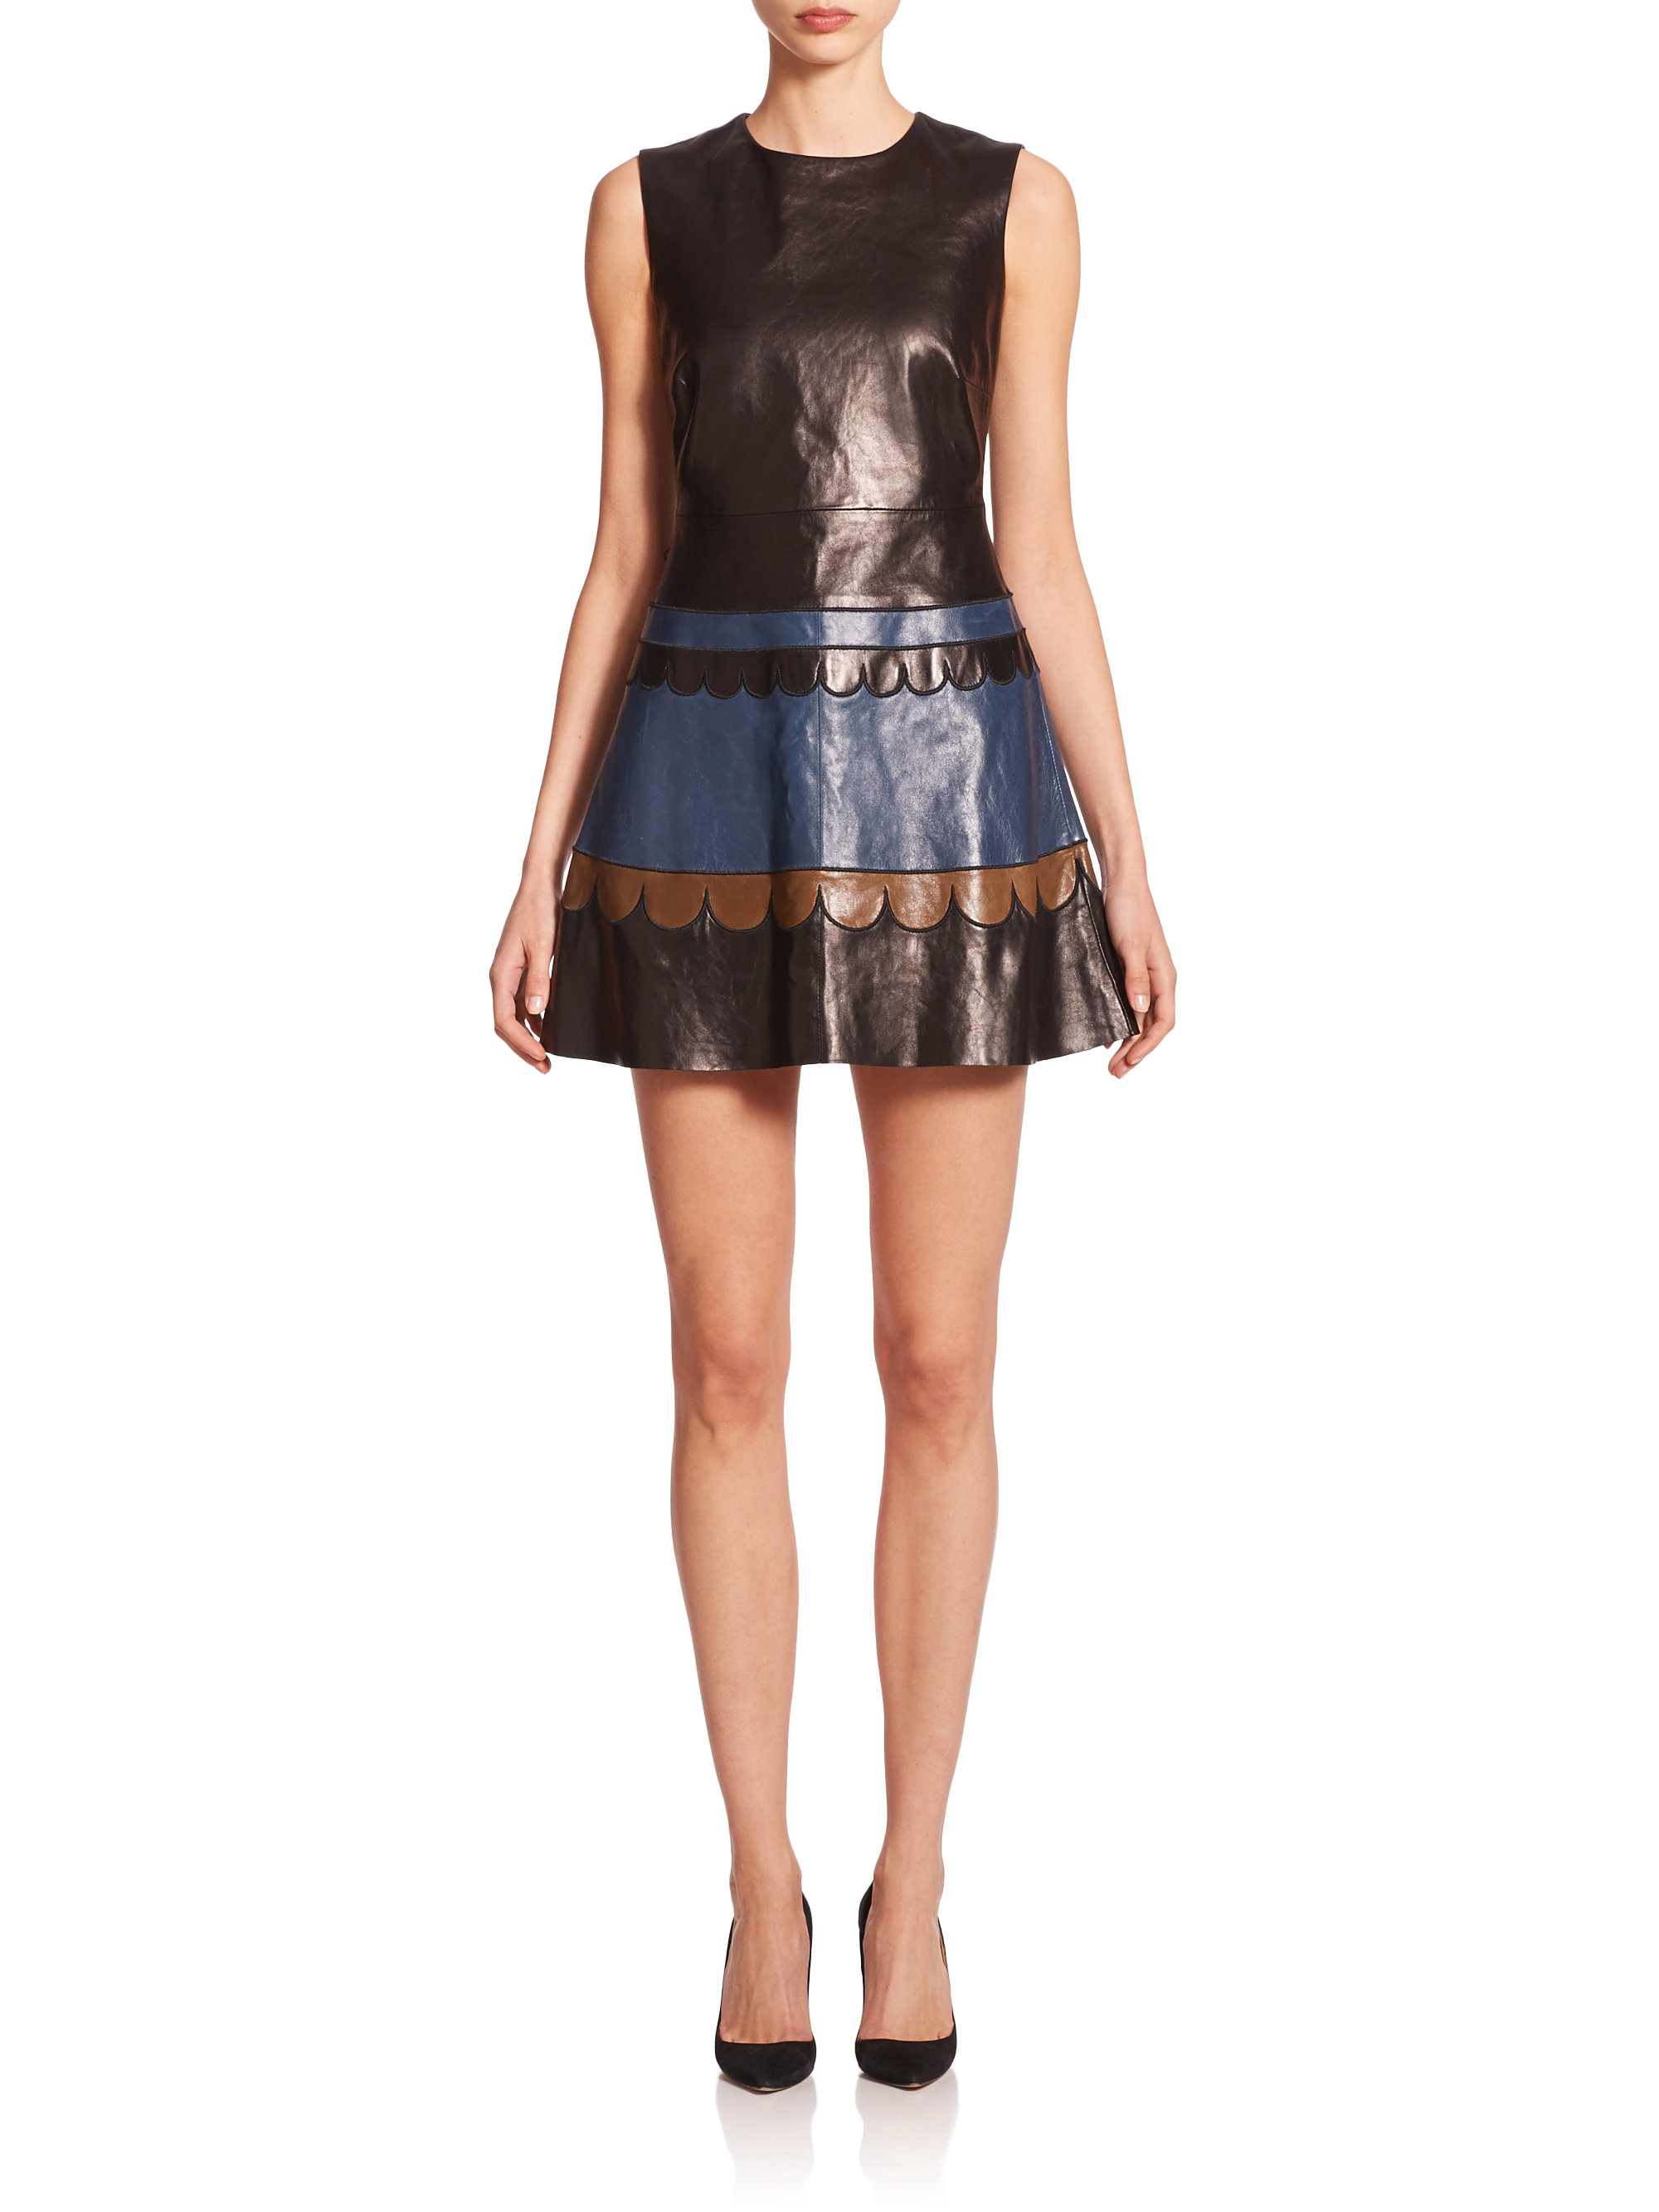 deea56a013 RED Valentino Leather Scalloped Colorblock A-line Dress in Brown - Lyst